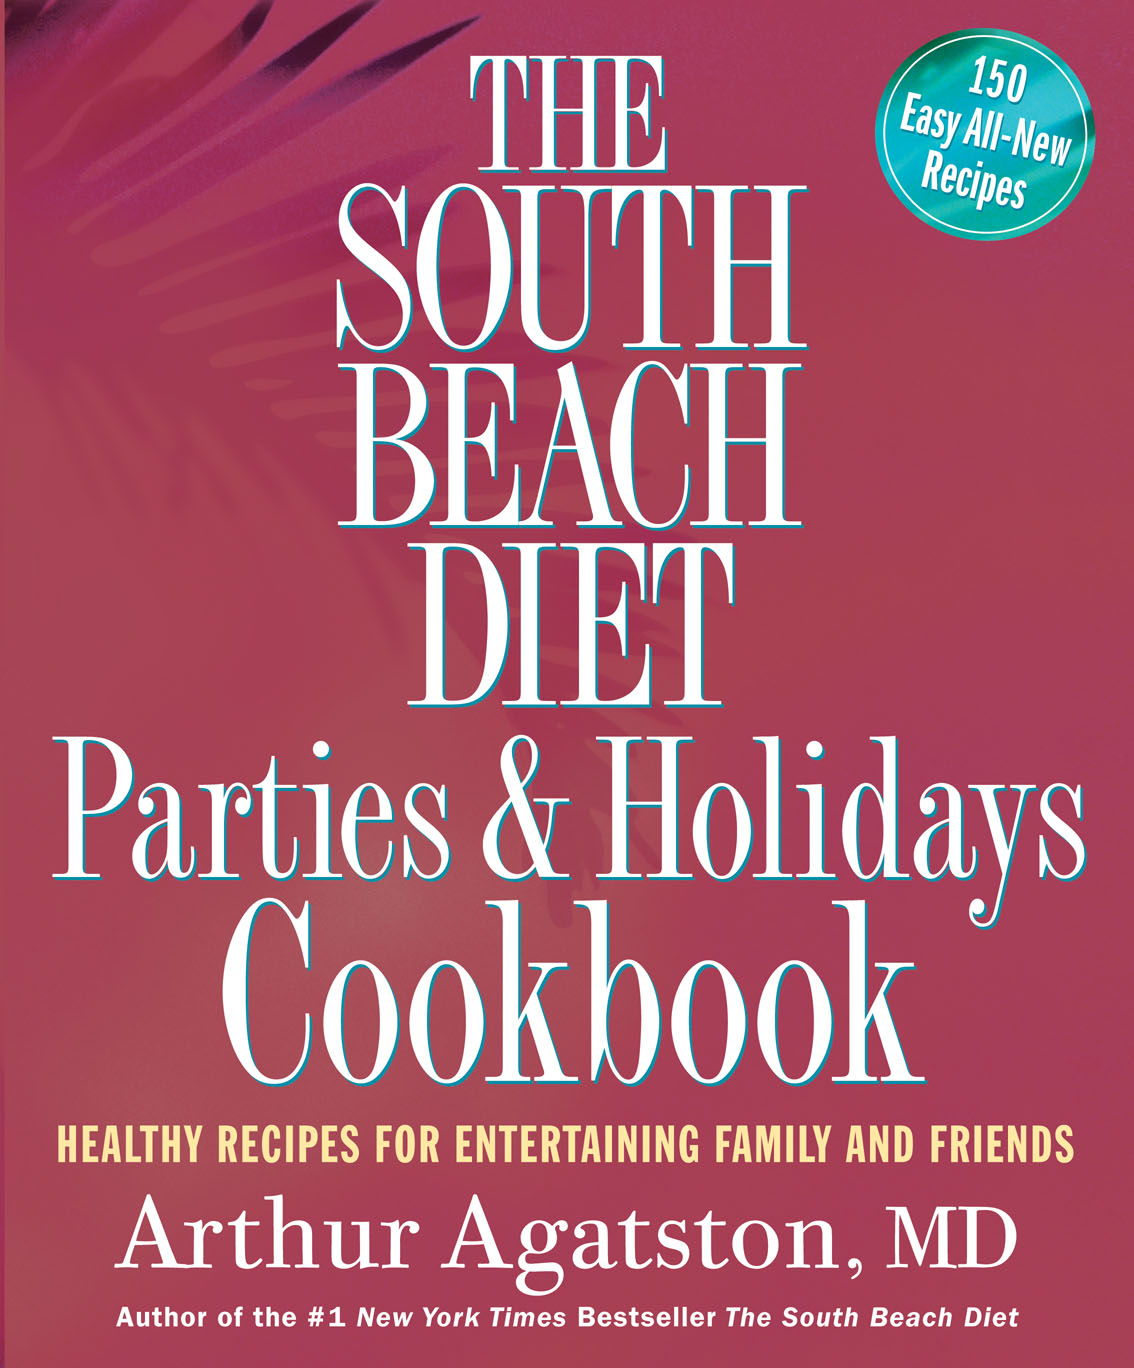 South Beach Diet Parties and Holidays Cookbook